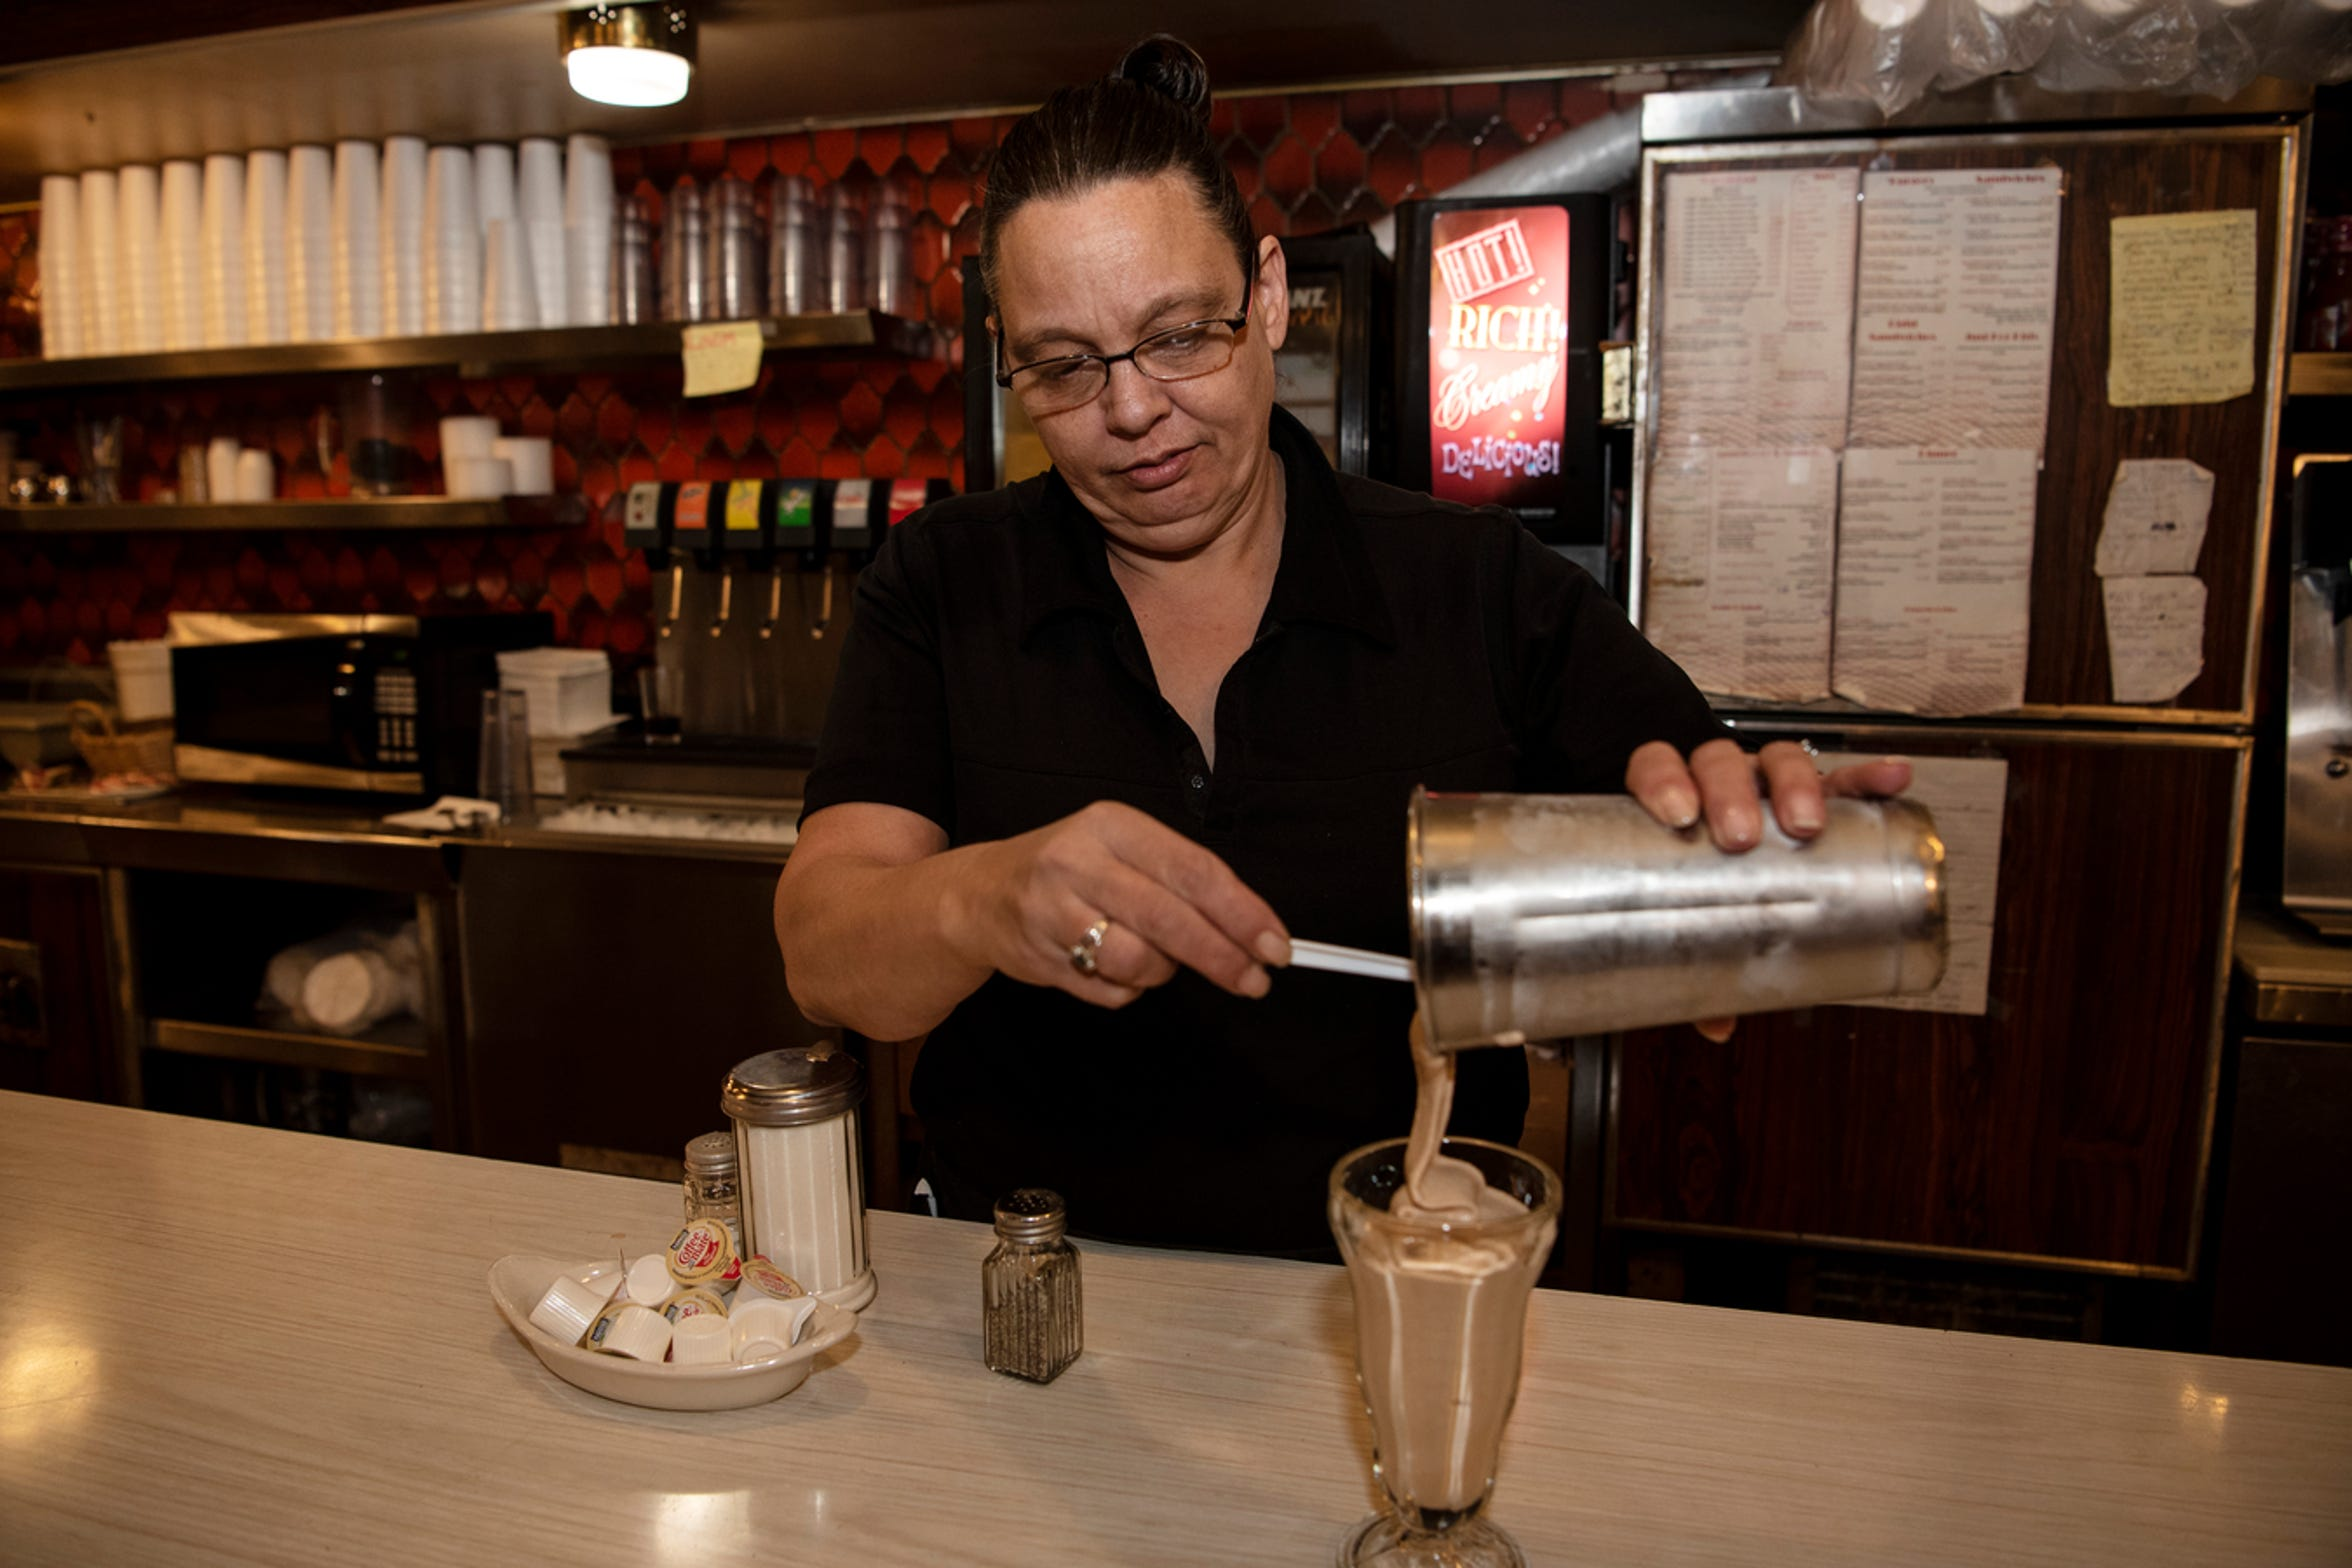 Cheryl Smith prepares a chocolate malt on Wednesday, Nov. 20, 2019 at Speed's Koffee Shop in Battle Creek, Mich.